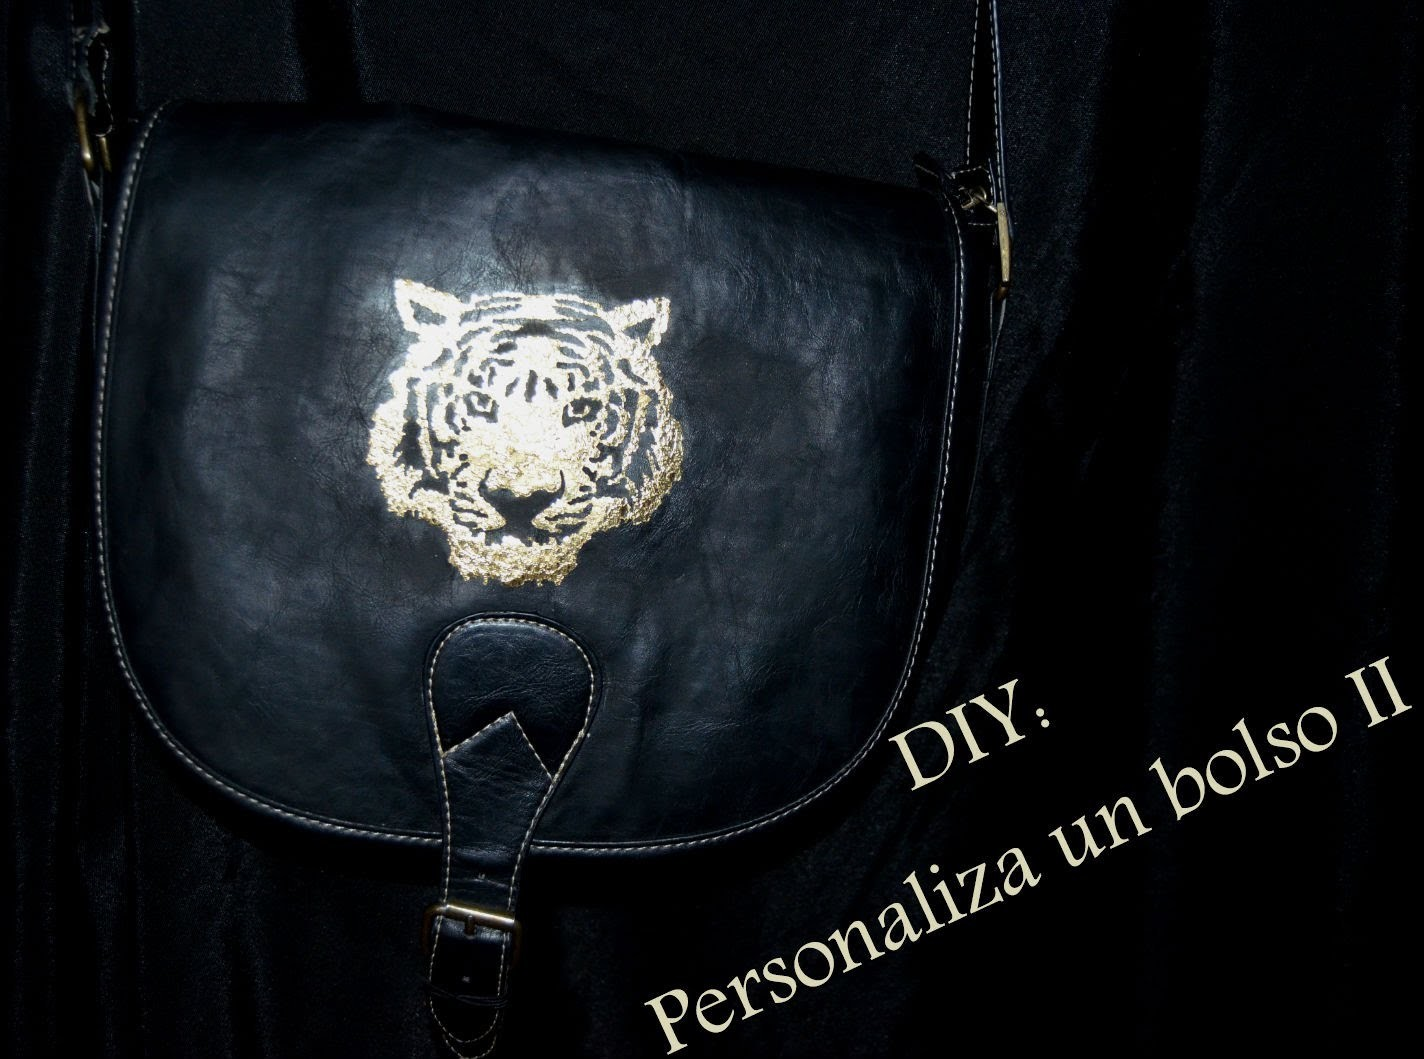 DIY: Personaliza tu bolso II. DIY: Customize your bag II